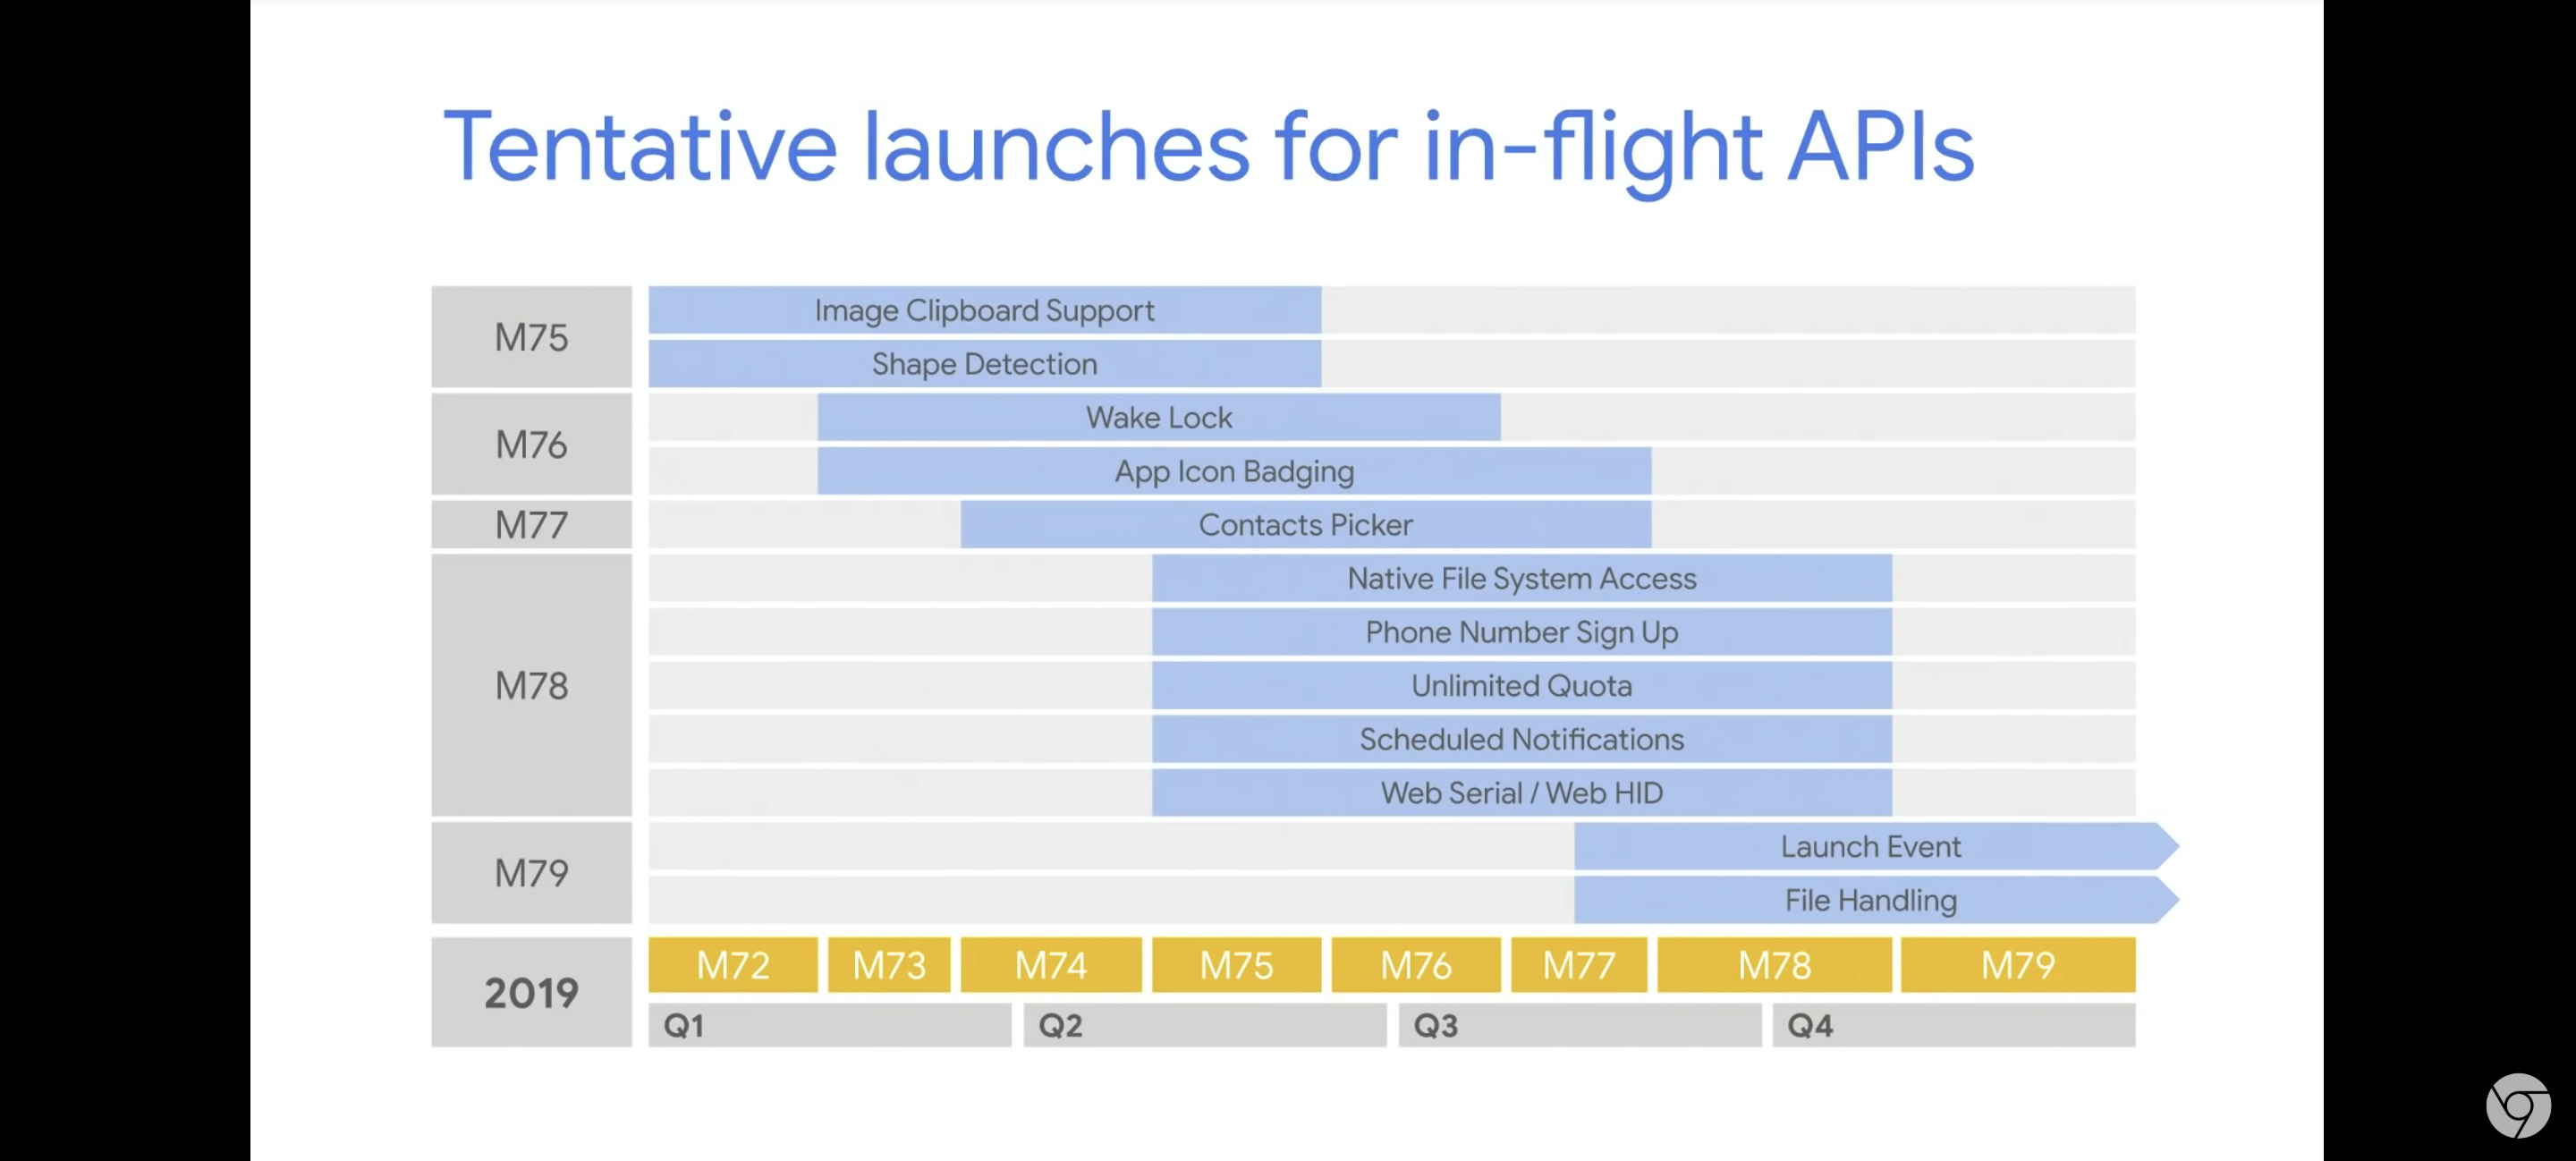 Tentative launches for in-flight APIs